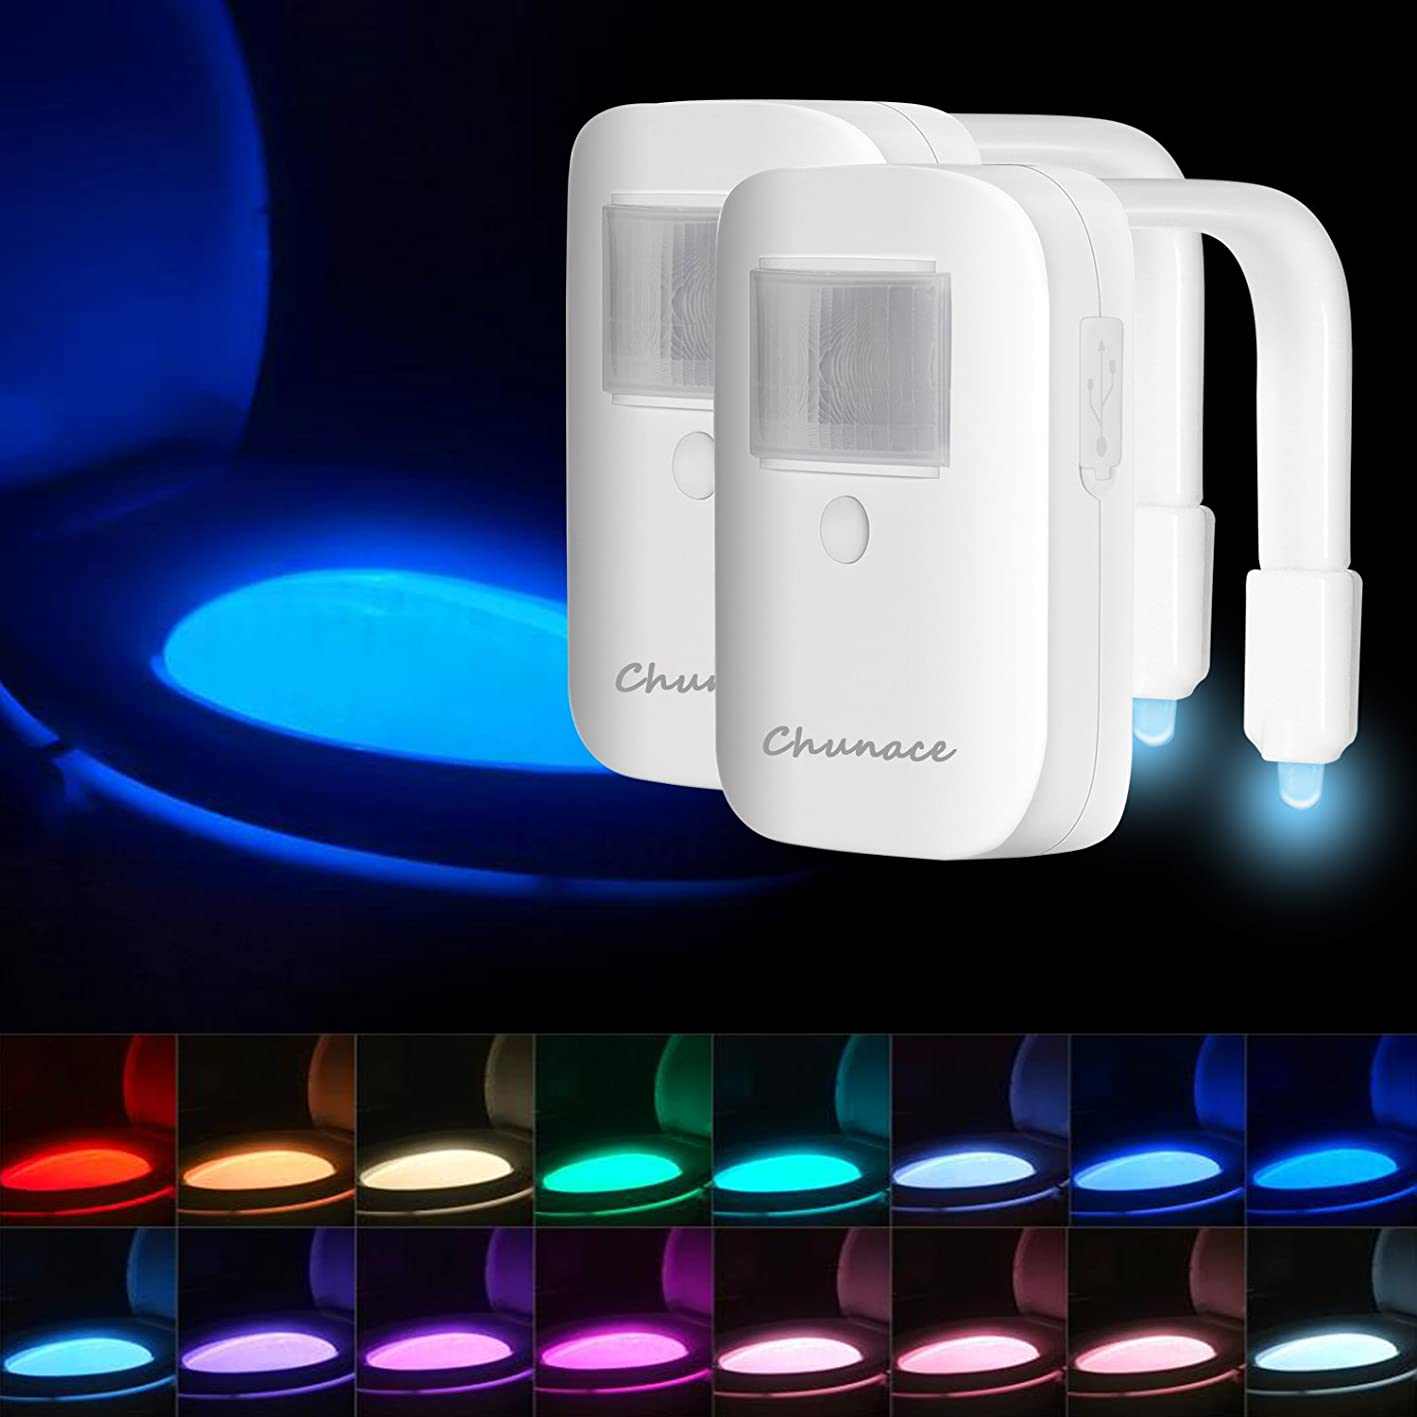 Rechargeable Toilet Bowl Night Lights,16 Colors Motion Detection Cool Fun Nightlights, Funny & Unique Birthday Gift Idea for Dad, Mom, Men, Women & Kids, Best Gag Gadgets (2 Pack White) maejsztzkrs177